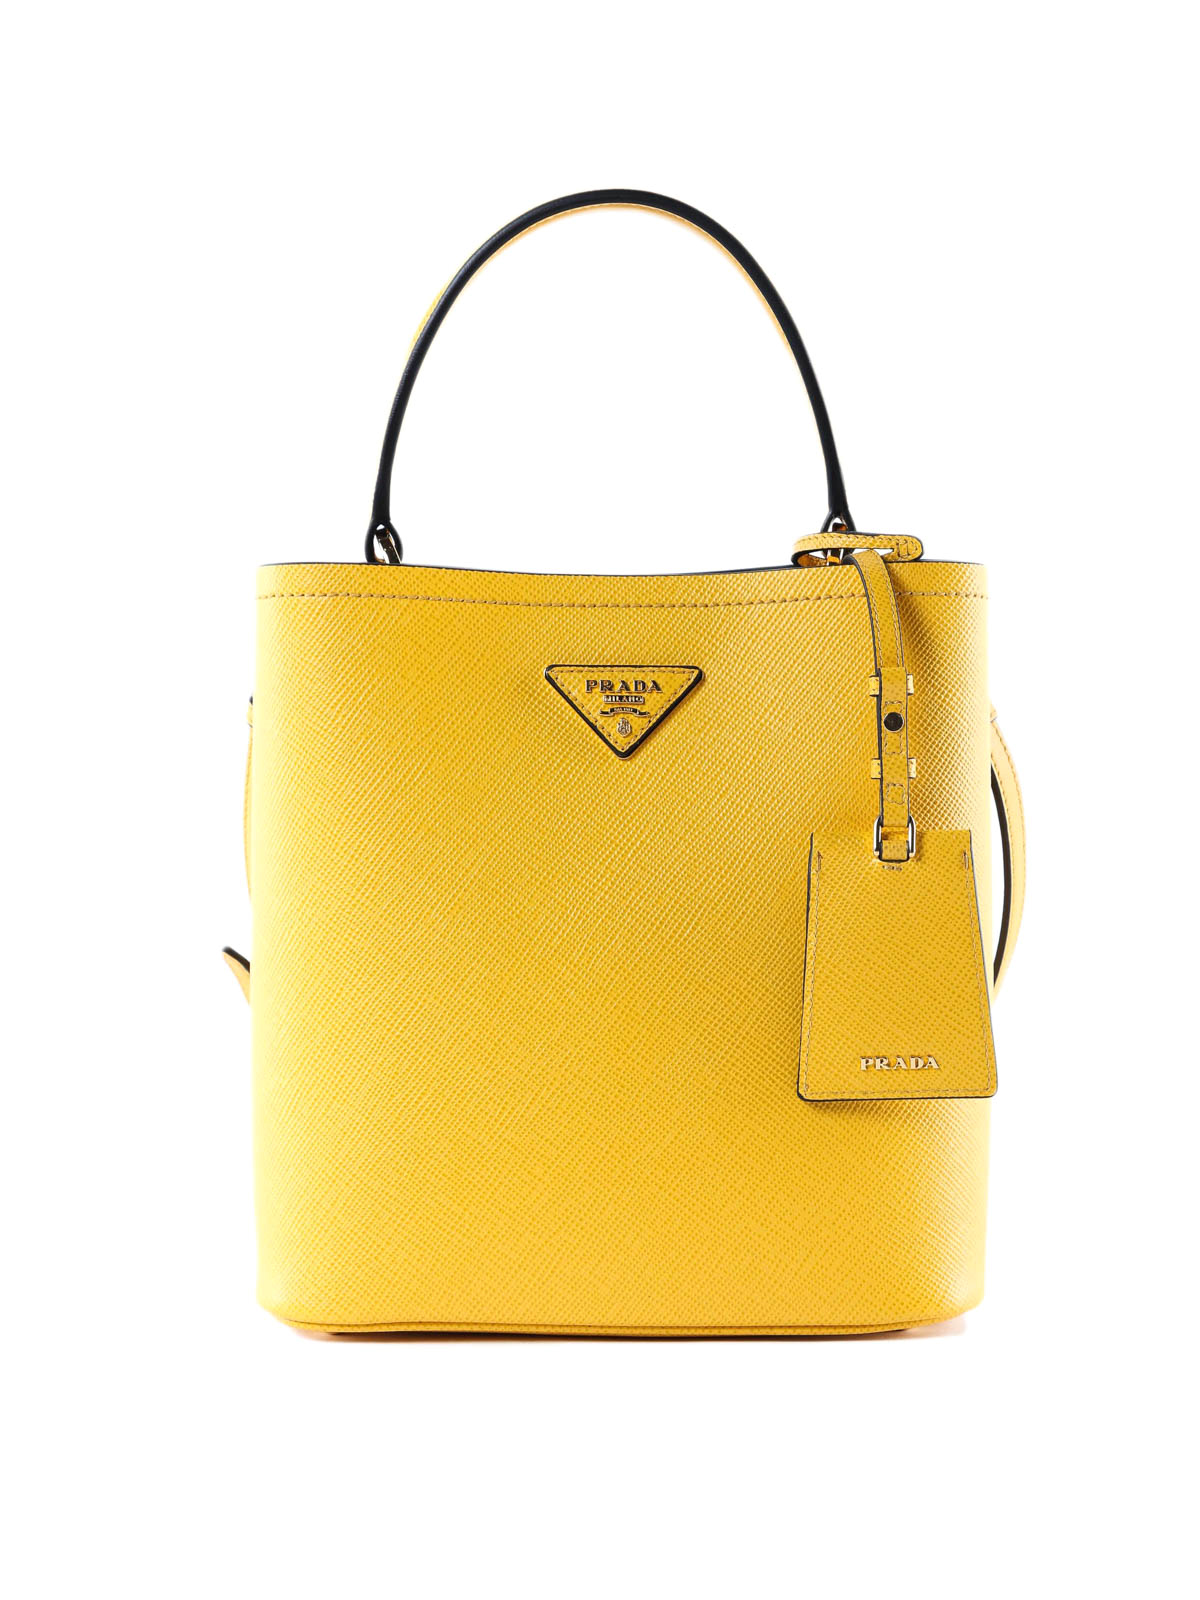 Prada - Yellow Saffiano leather double bucket bag - Bucket bags ... d77bffedbeb43